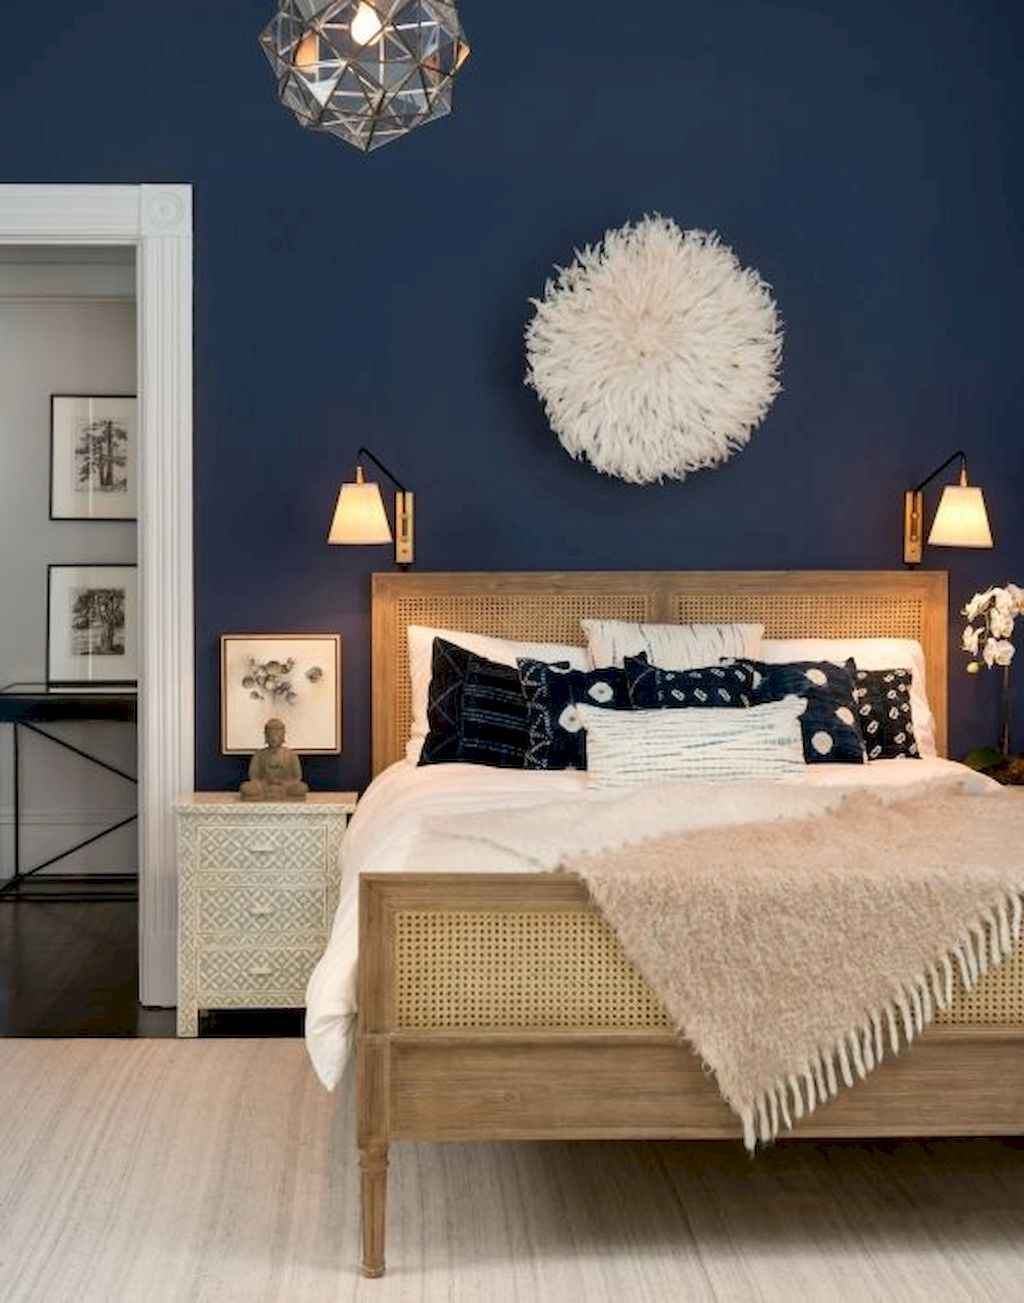 Awesome bedroom decoration ideas (53)